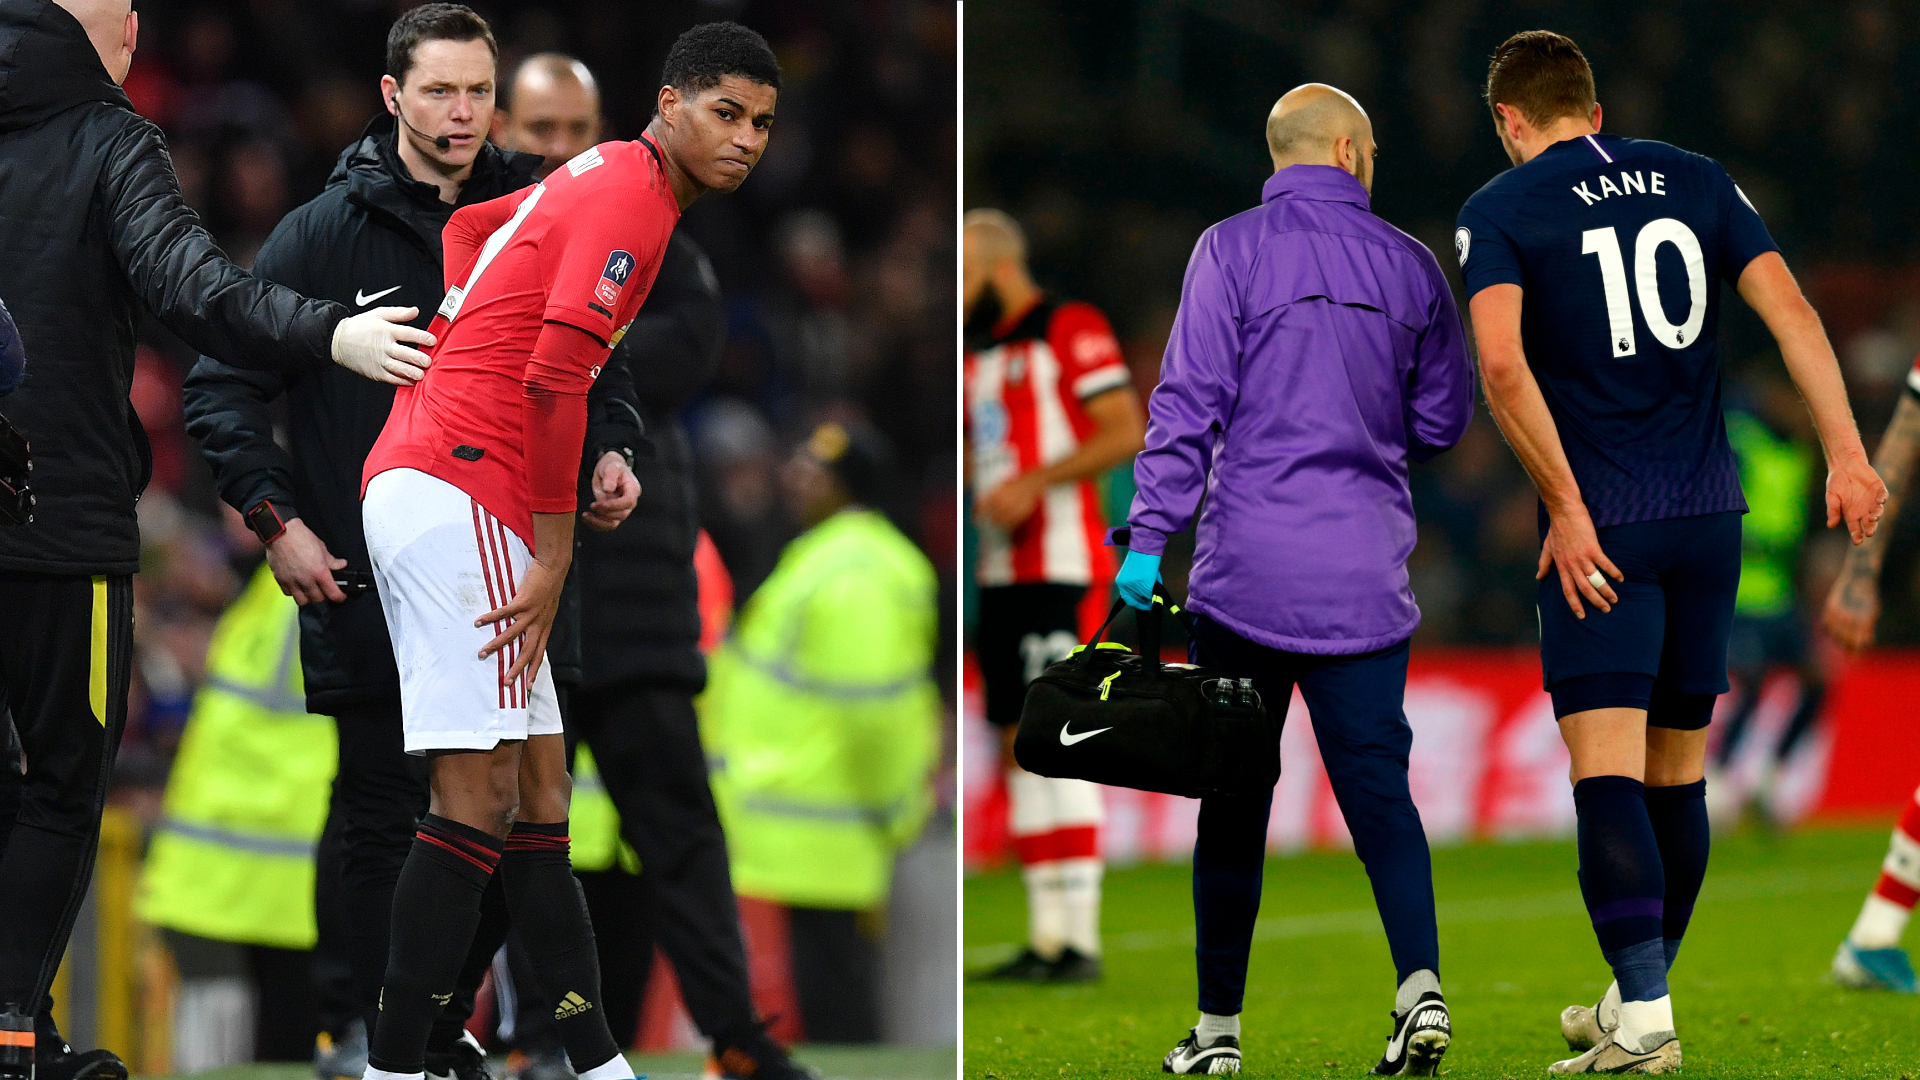 Kane and Rashford injuries not surprising with amount of games - Guardiola